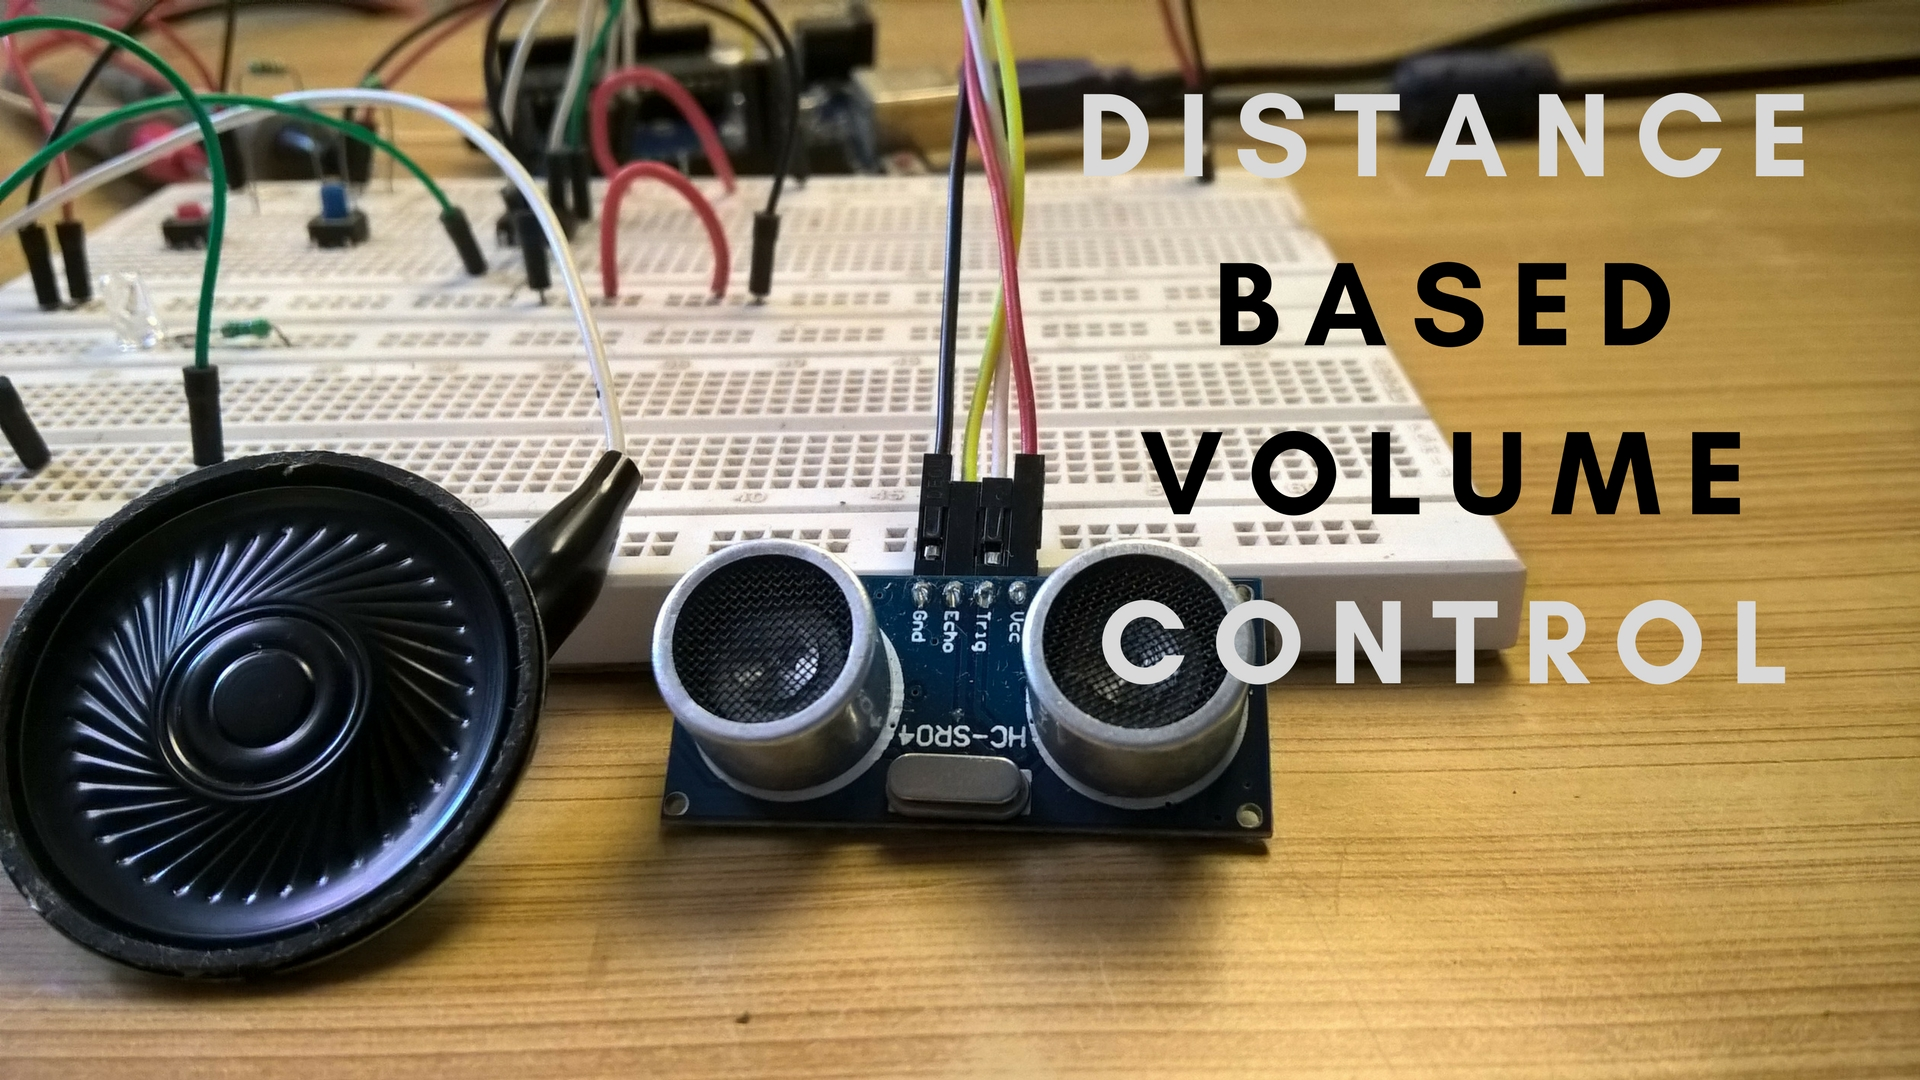 Picture of Automatic Distance Based Volume Control